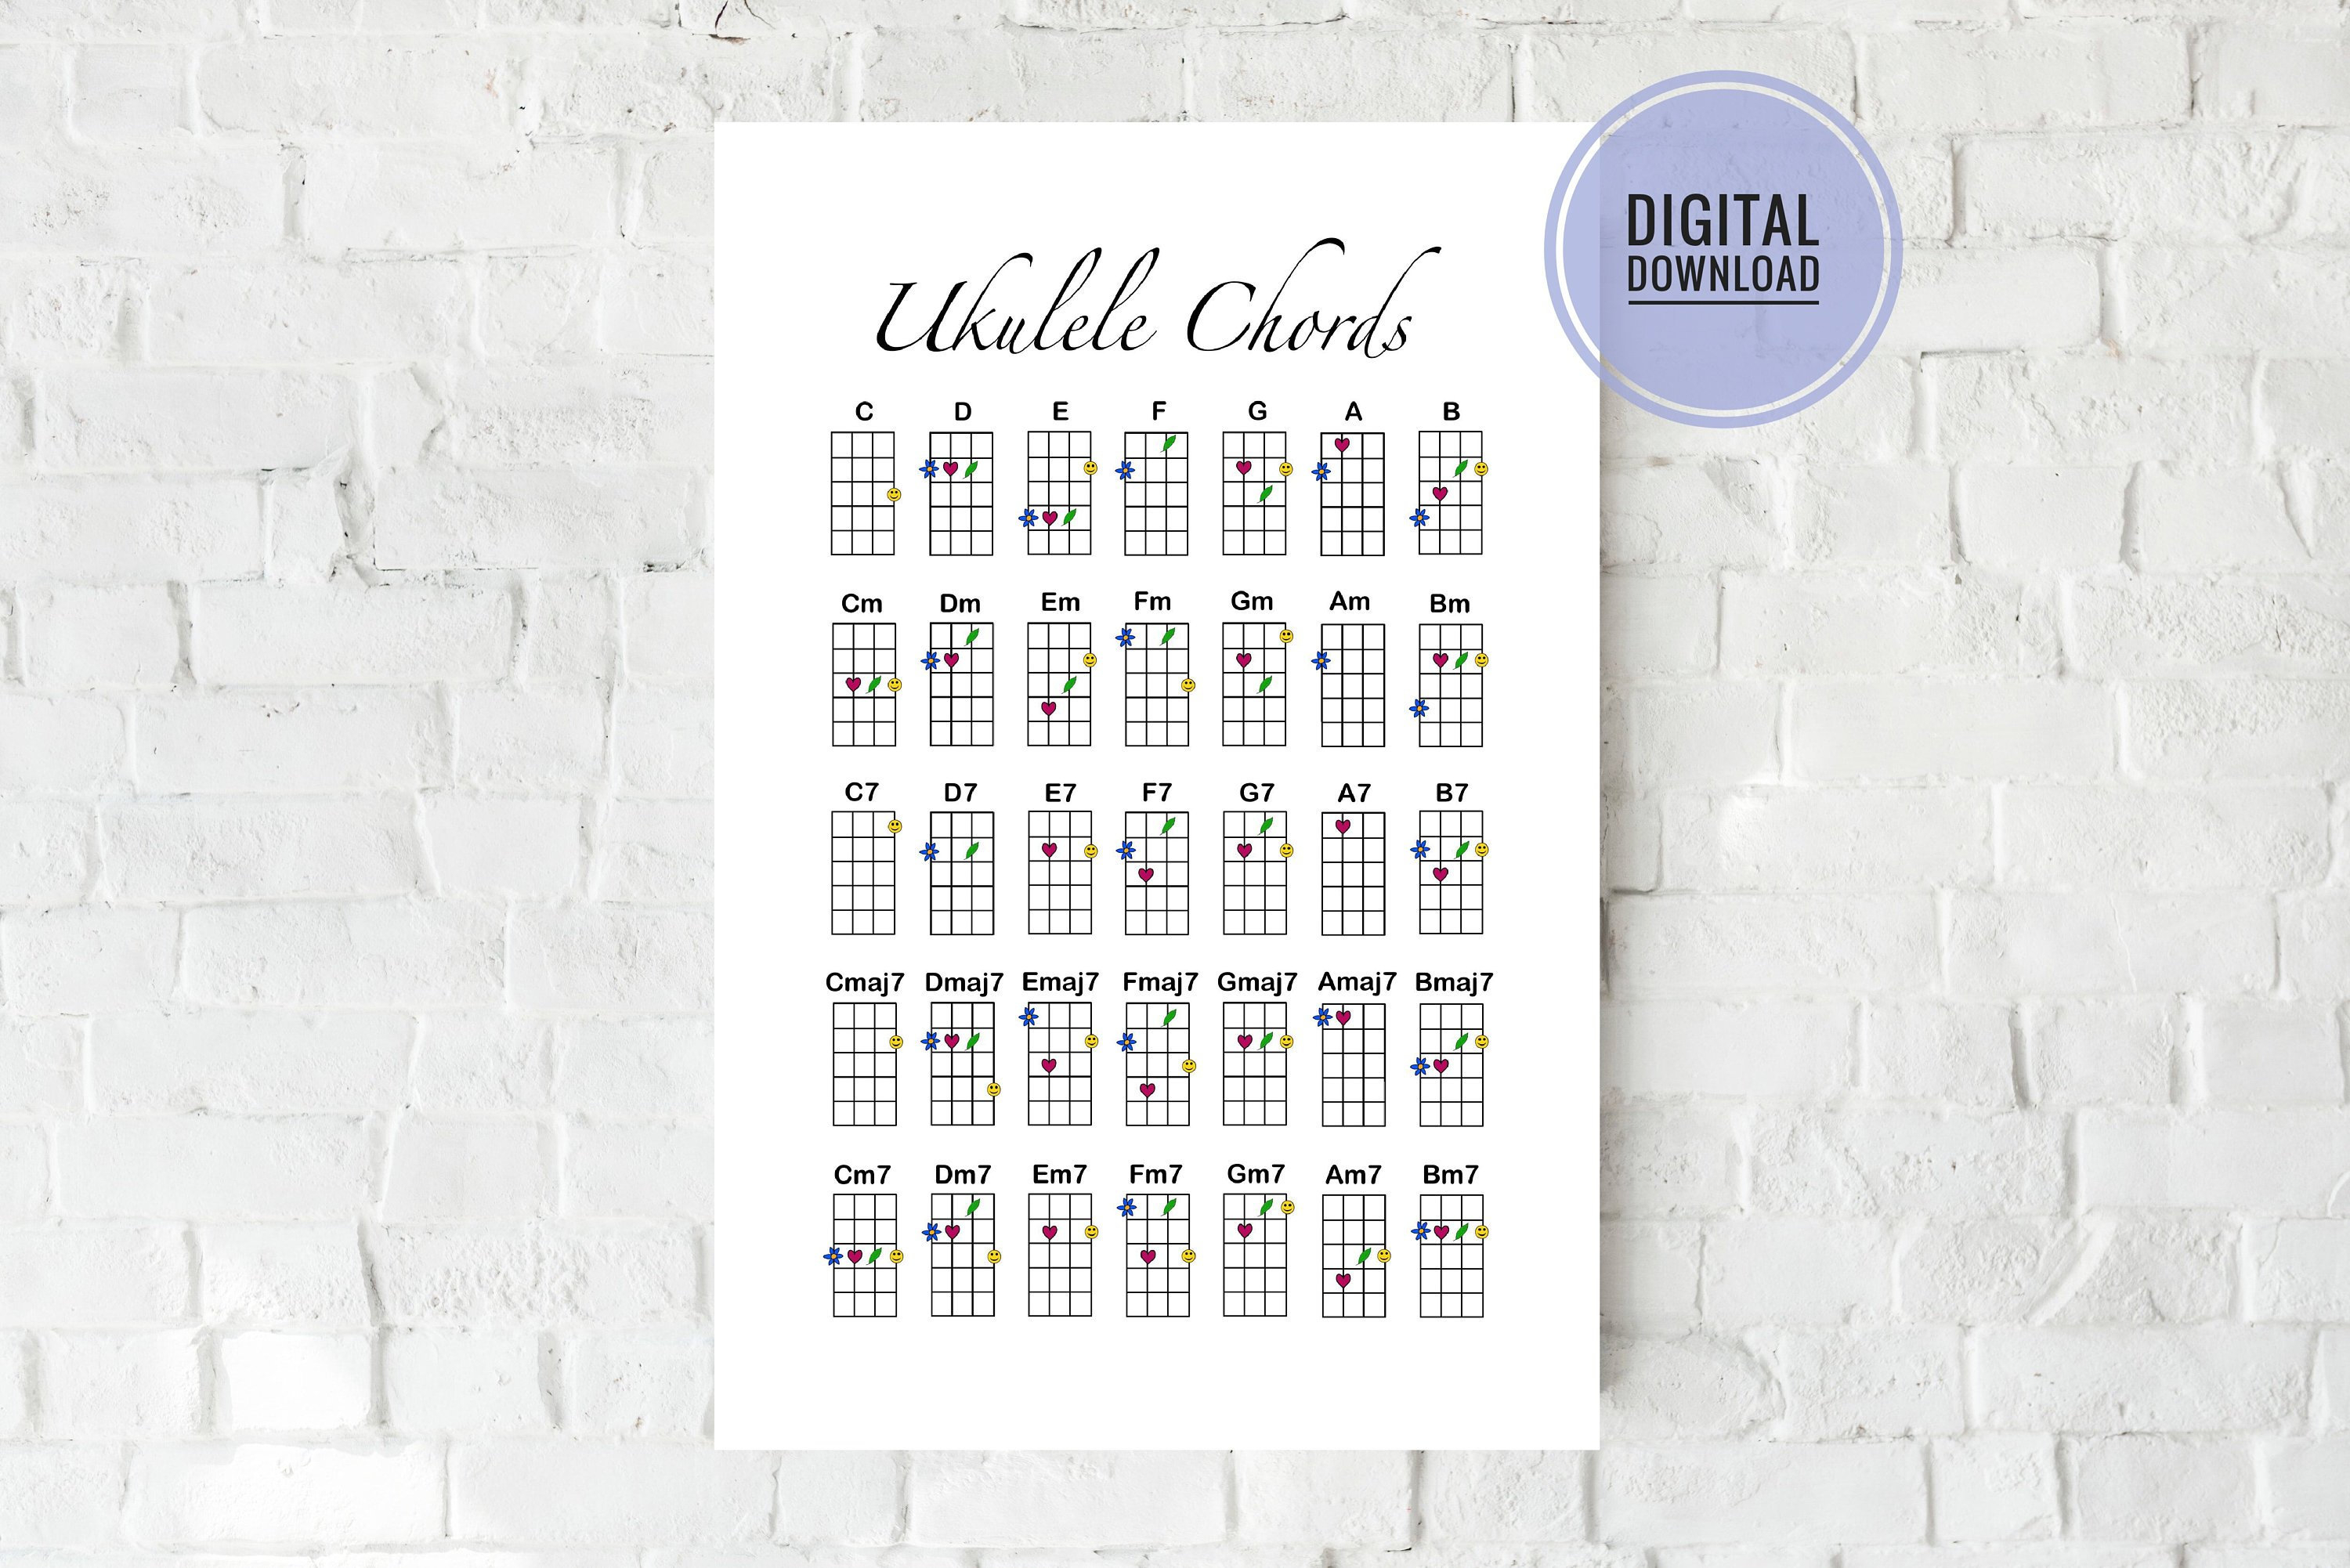 Ukulele Chord Chart Ukulele Chord Chart Digital Download Artwork Stylized Ukulele Chords Wall Art Room Decor Reference Sheet Grace And Gloria Co